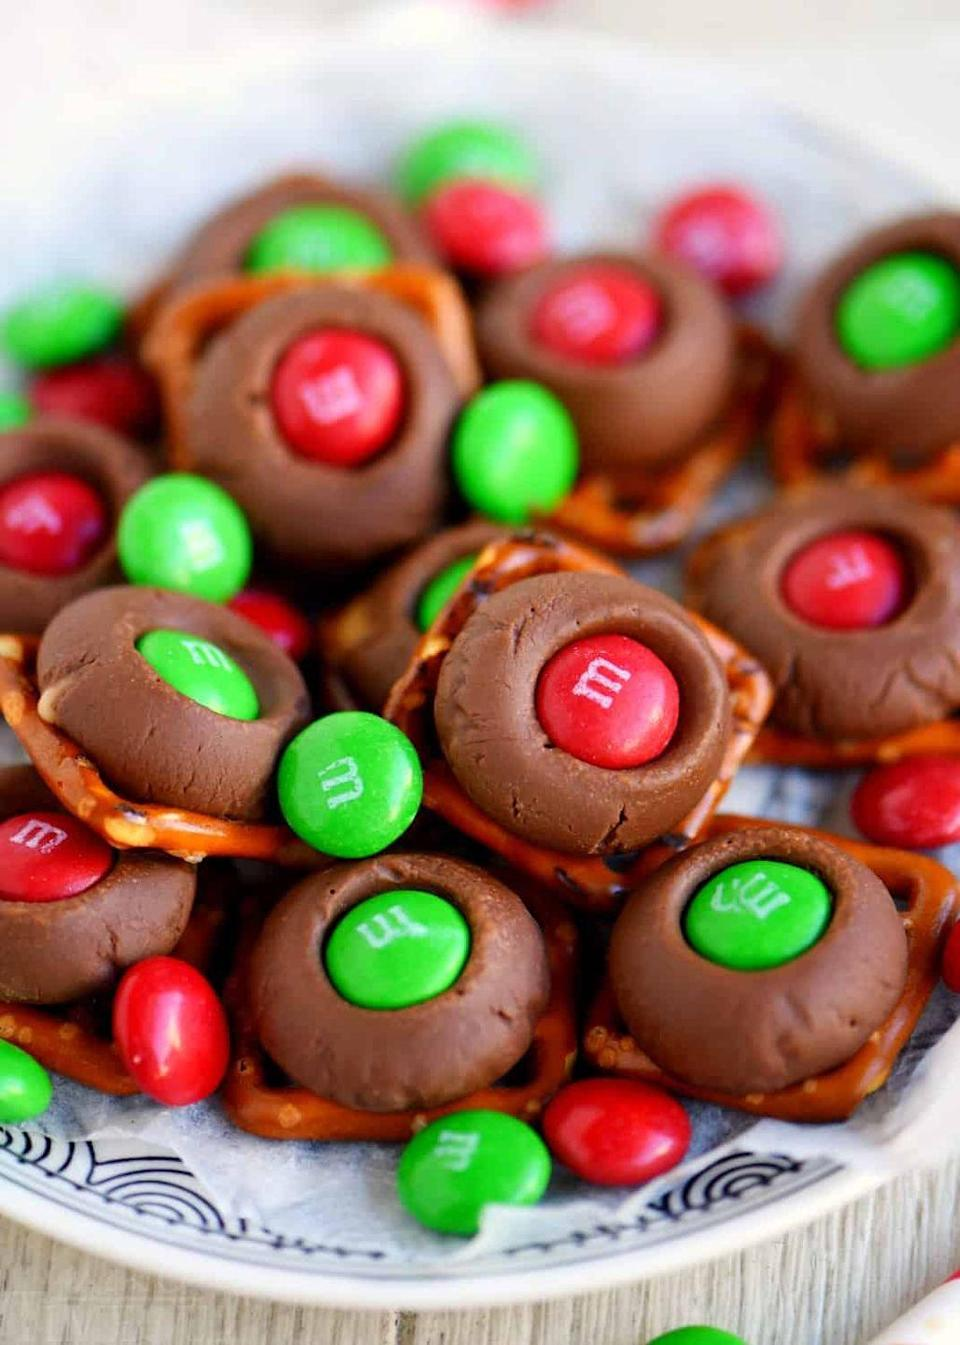 """<p>This three-ingredient treat is ready to be eaten in just five minutes.</p><p><strong>Get the recipe at <a href=""""https://www.momontimeout.com/rolo-pretzel-buttons-just-3-ingredients/"""" rel=""""nofollow noopener"""" target=""""_blank"""" data-ylk=""""slk:Mom on Timeout"""" class=""""link rapid-noclick-resp"""">Mom on Timeout</a>.</strong> </p>"""